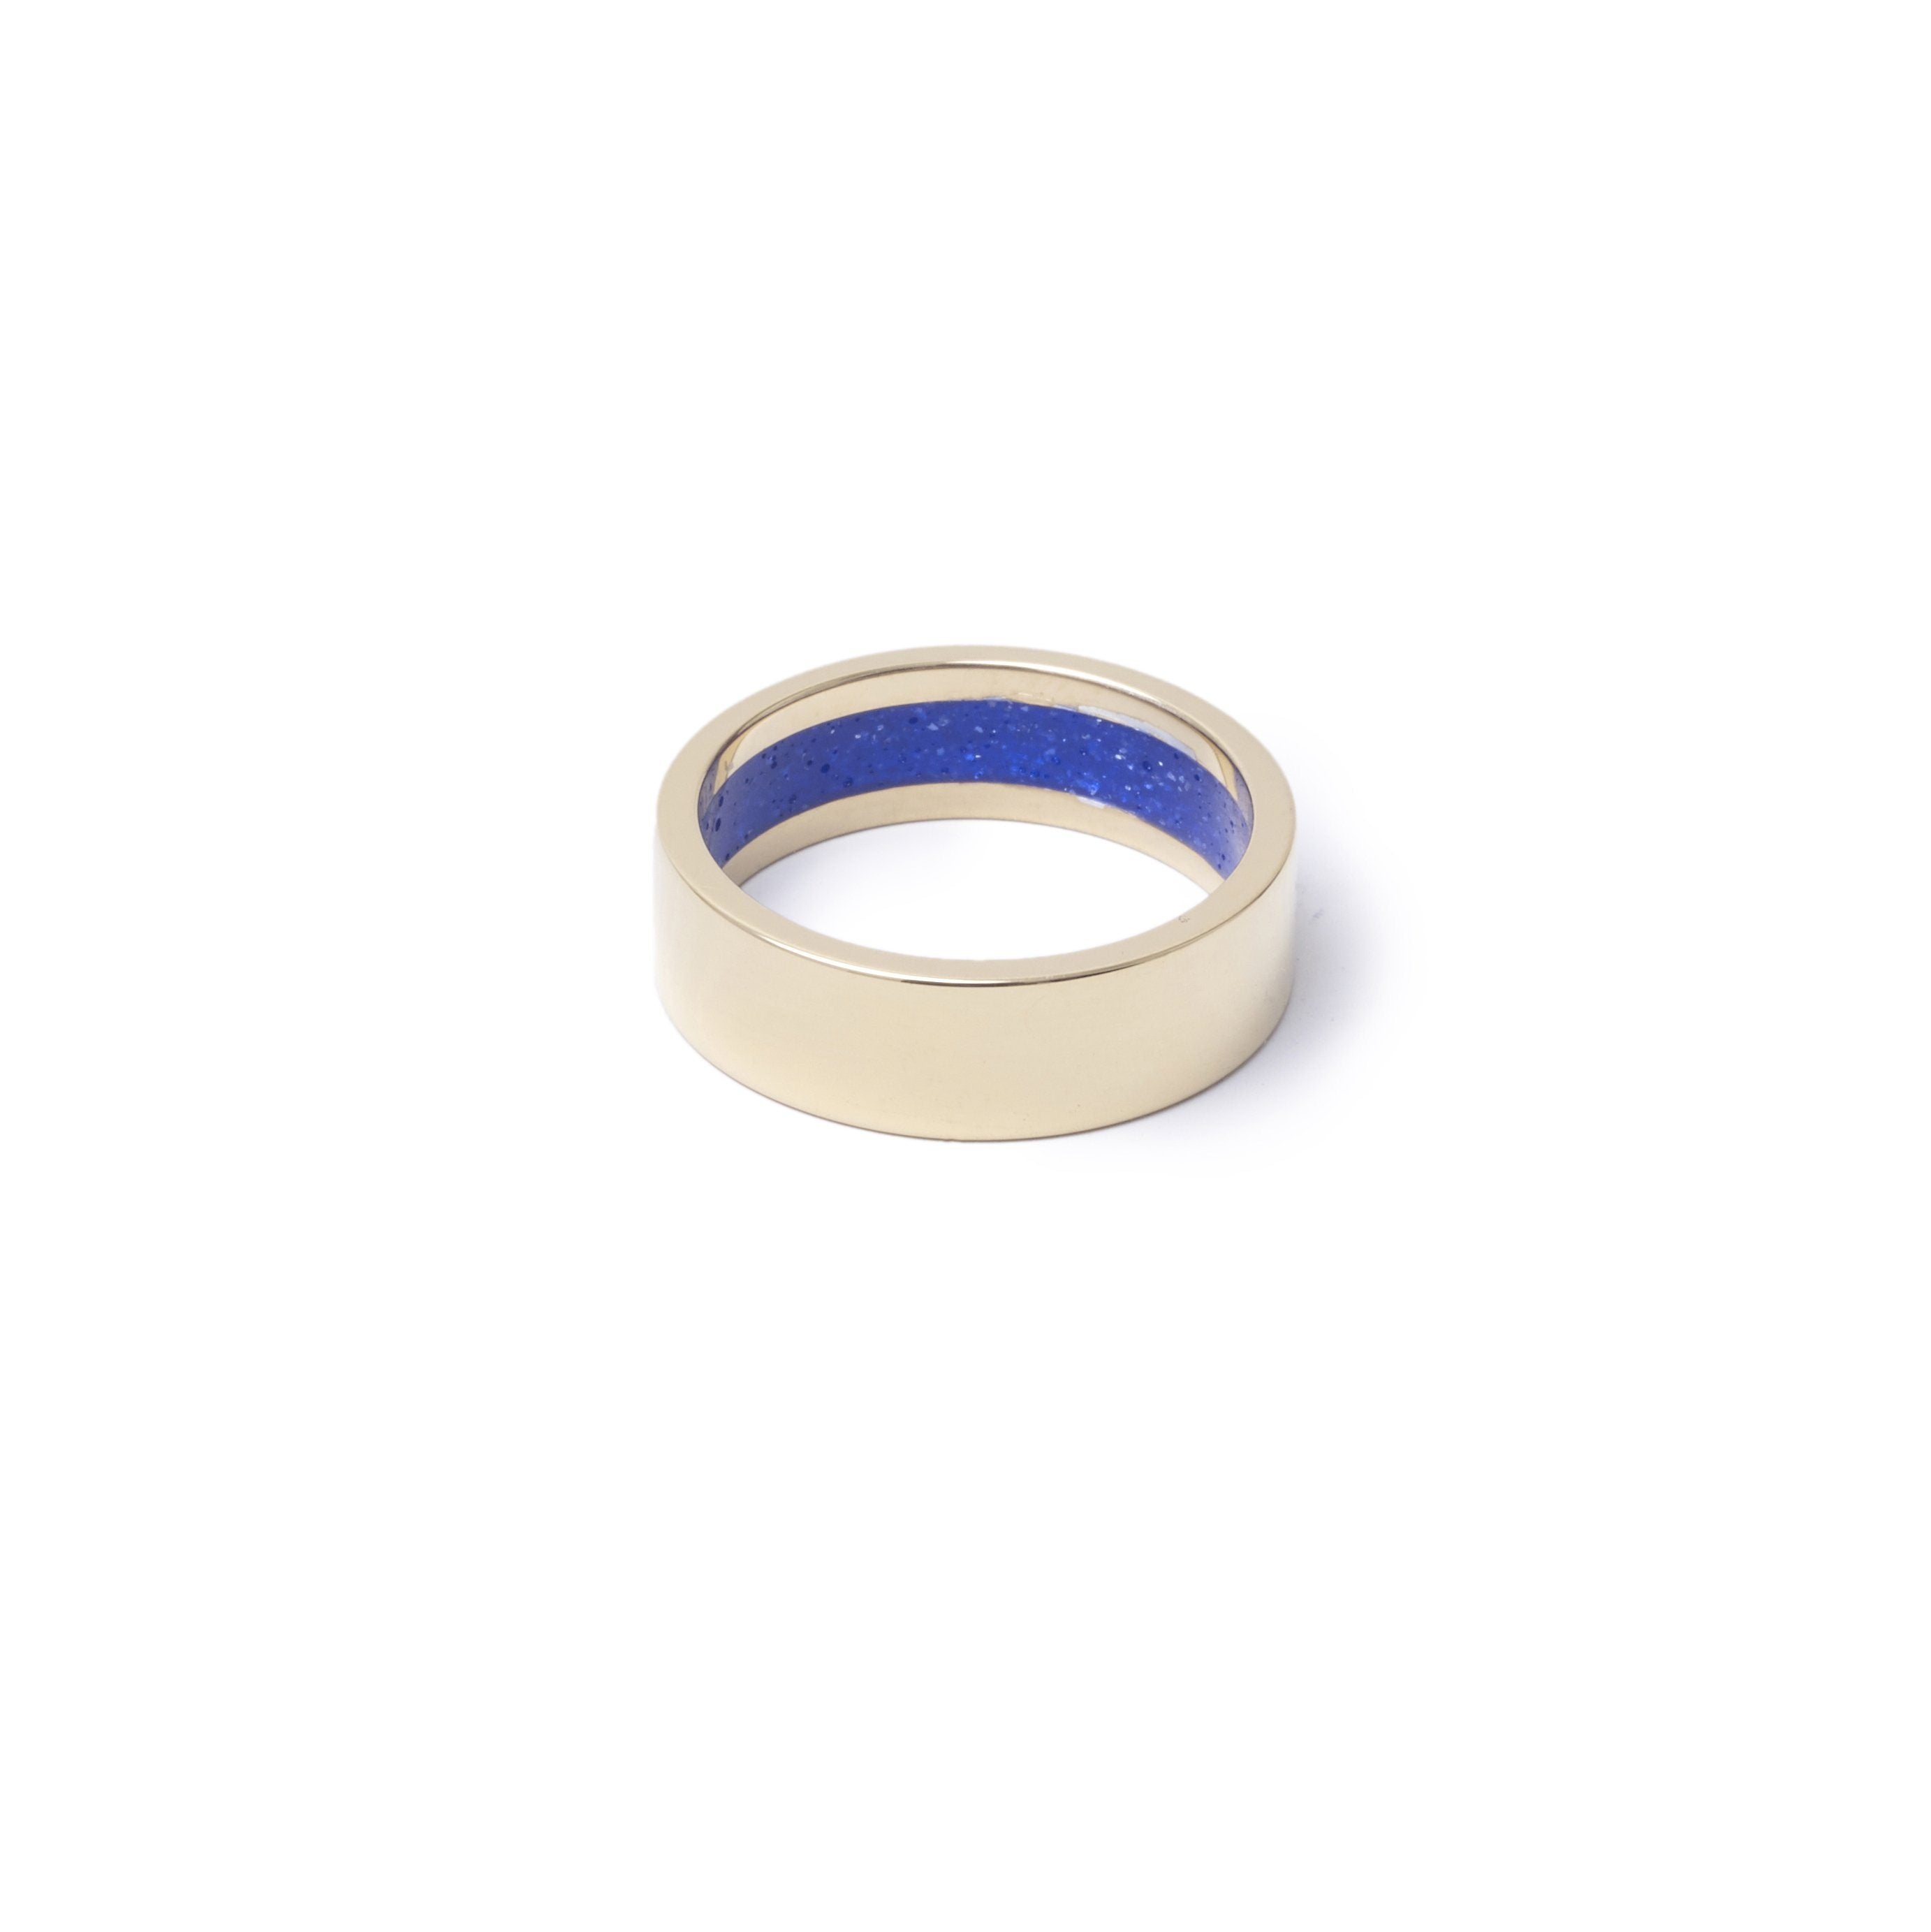 Everence Ring, 10k Yellow Gold everence.life 6mm Sky